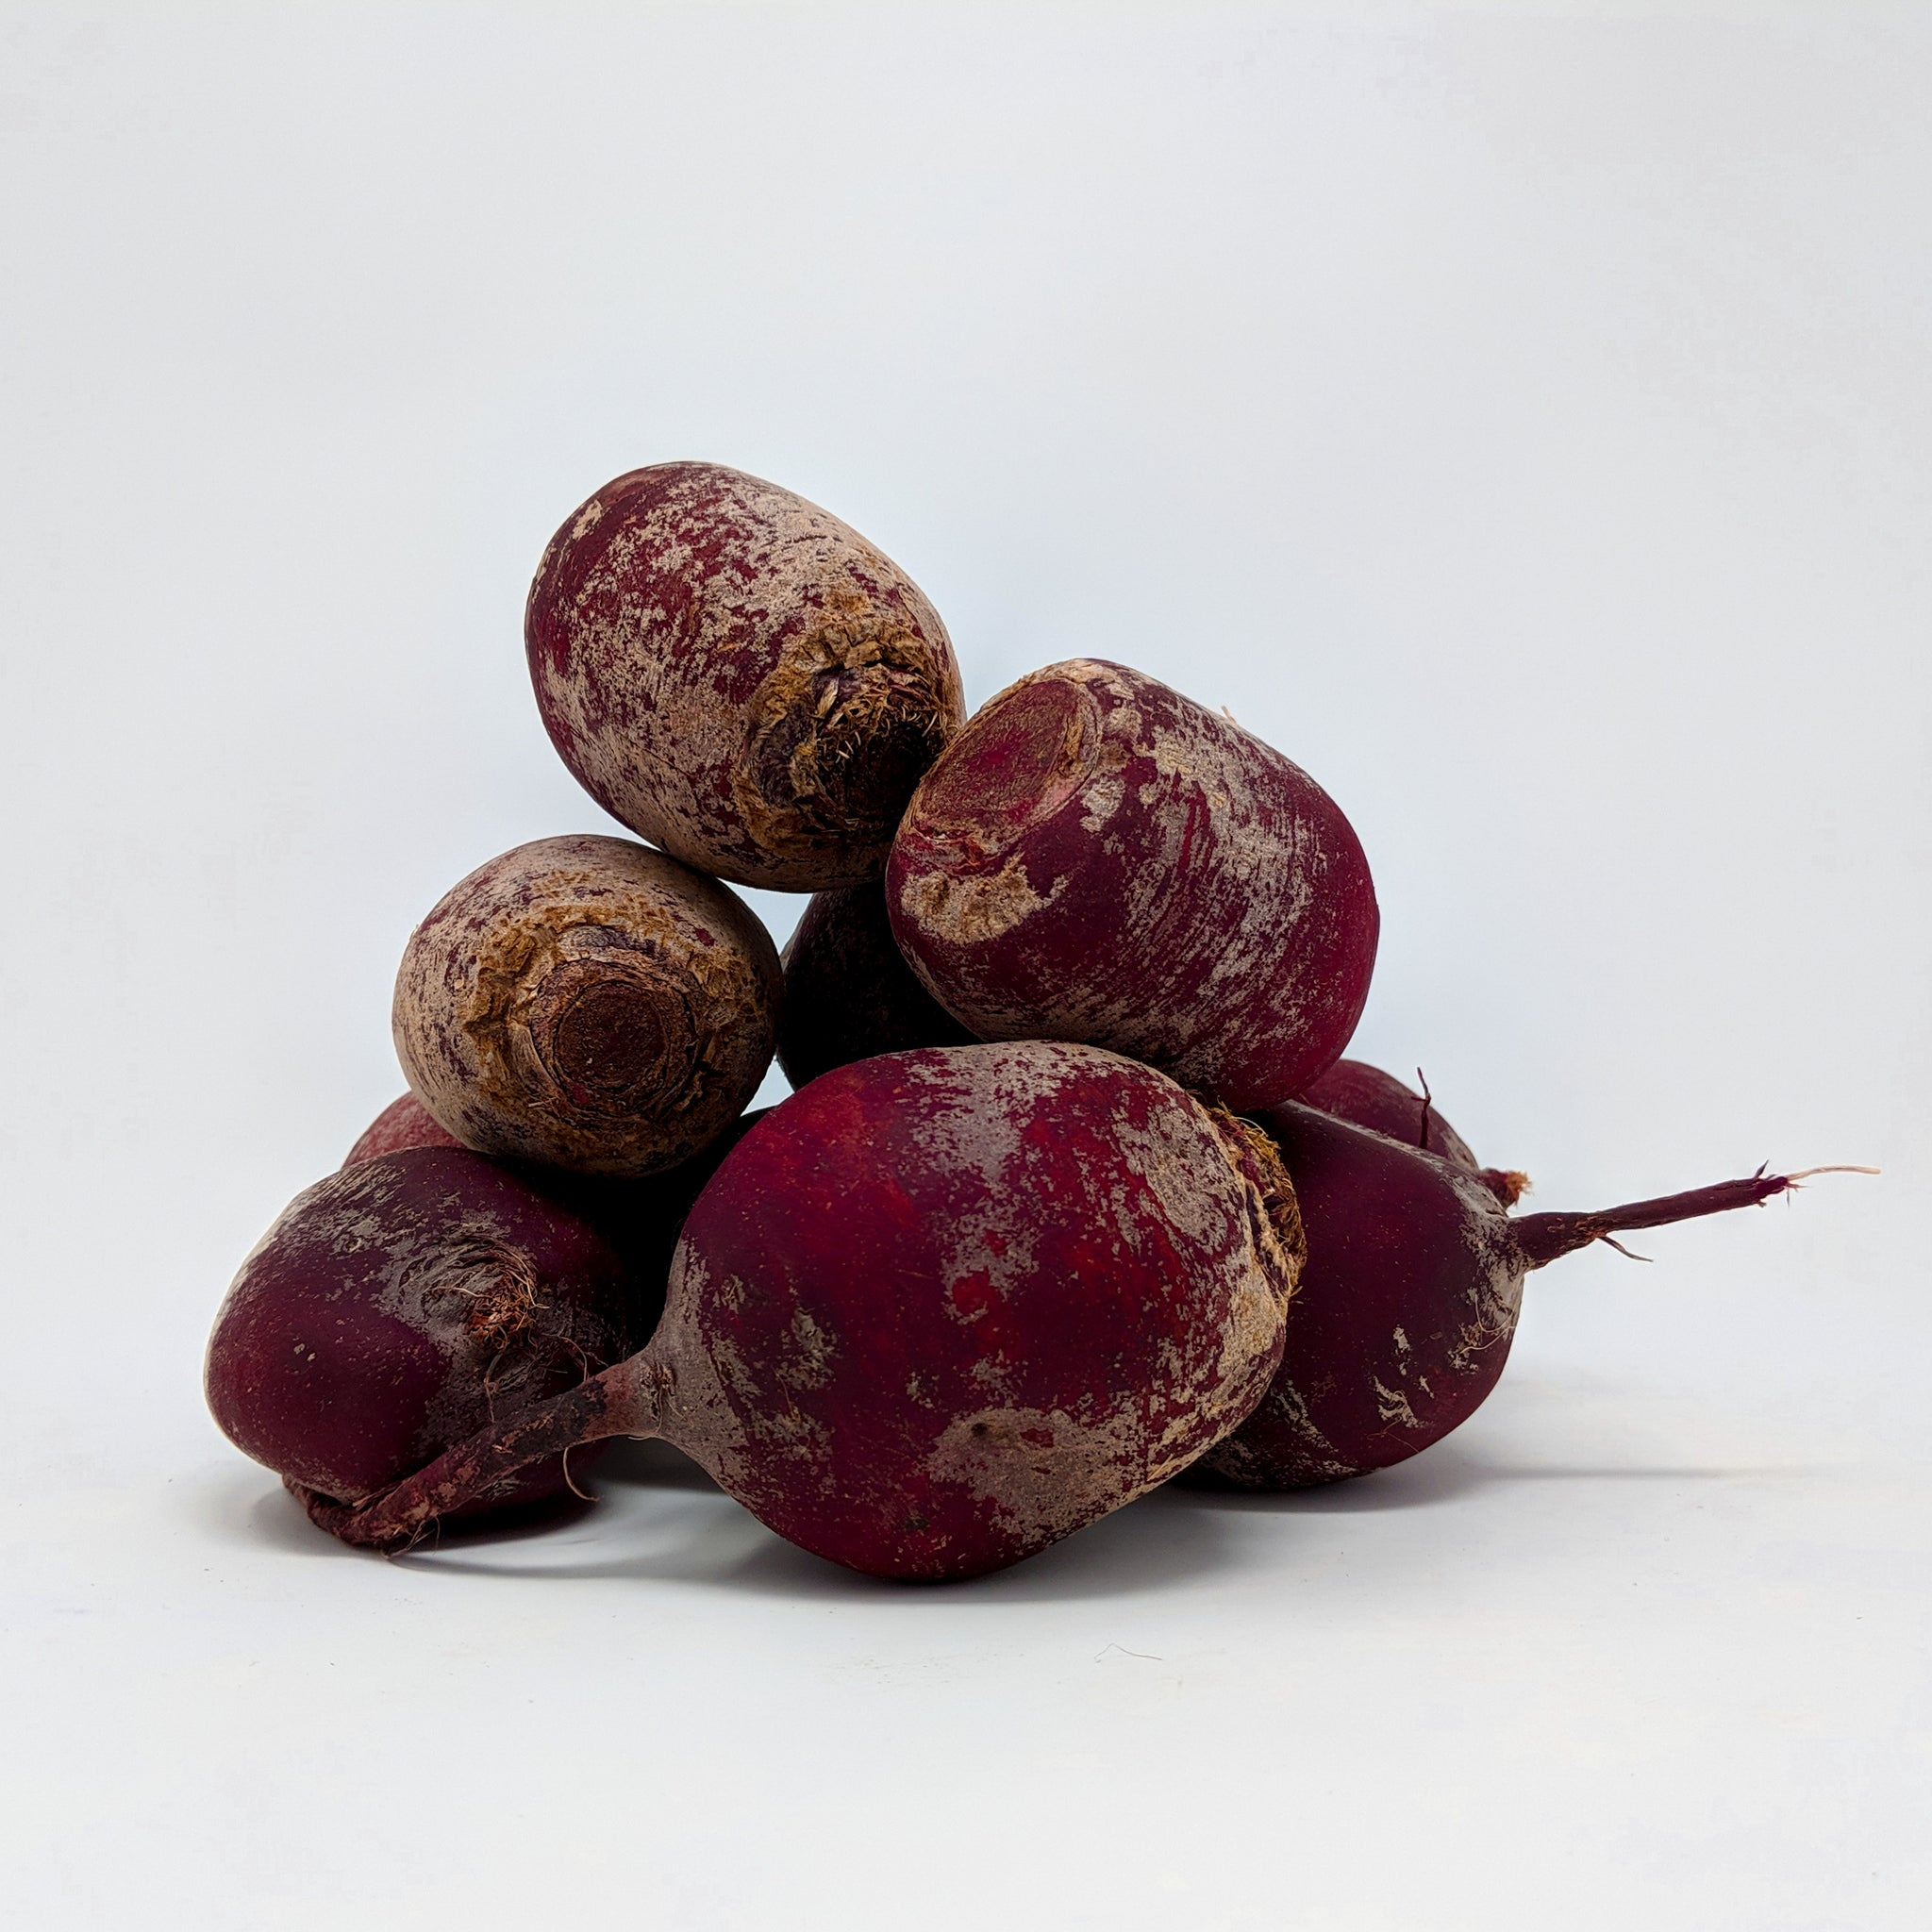 Medium Beets 3lb - Locally Grown